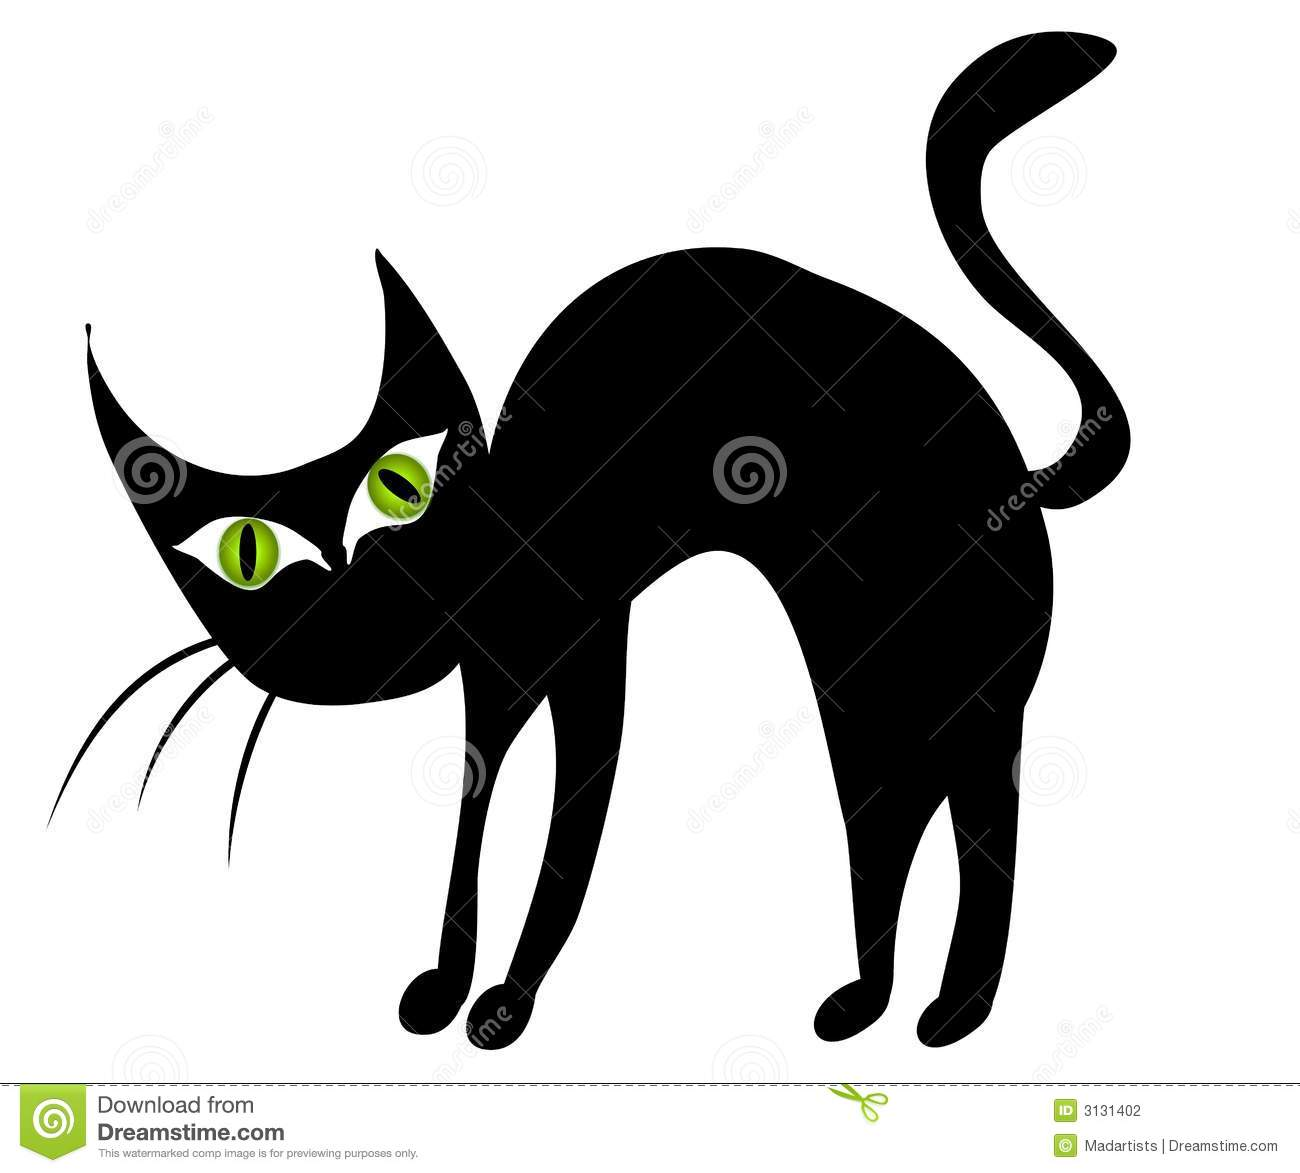 Clip Art Illustration Of A Black Cat With Big Green Eyes With